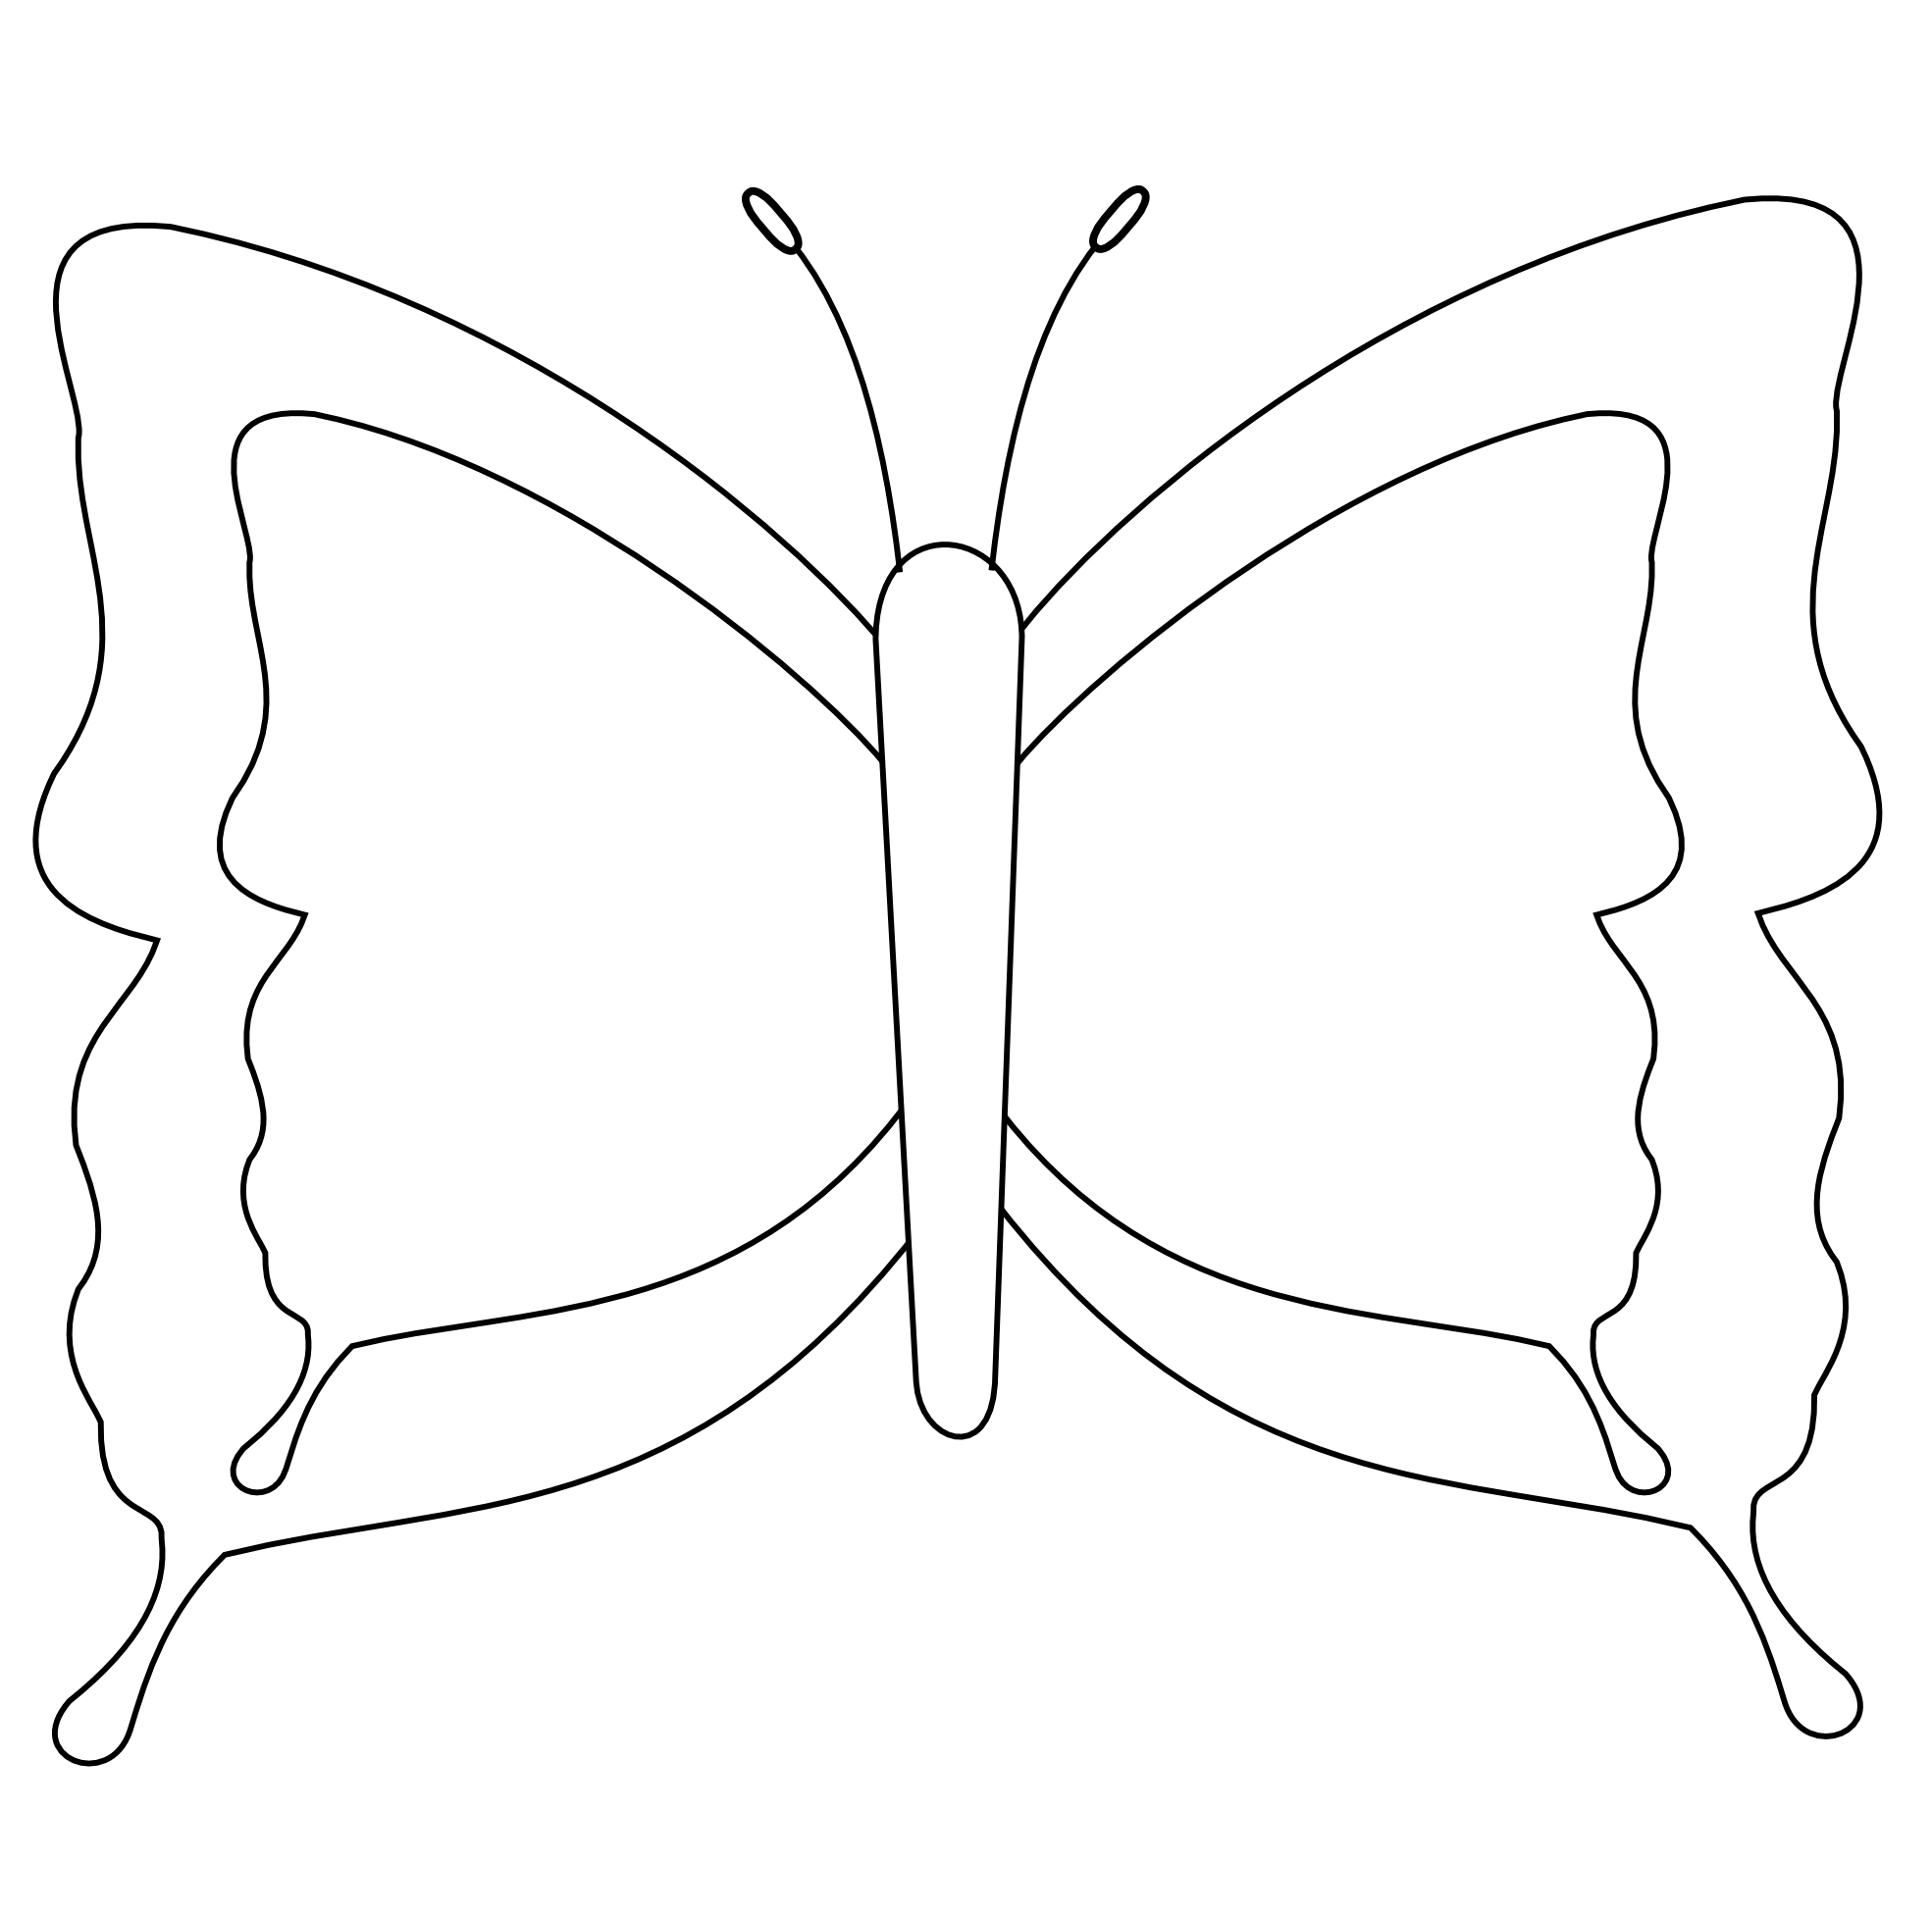 Free Butterfly Images Black And White Download Free Clip Art Free Clip Art On Clipart Library